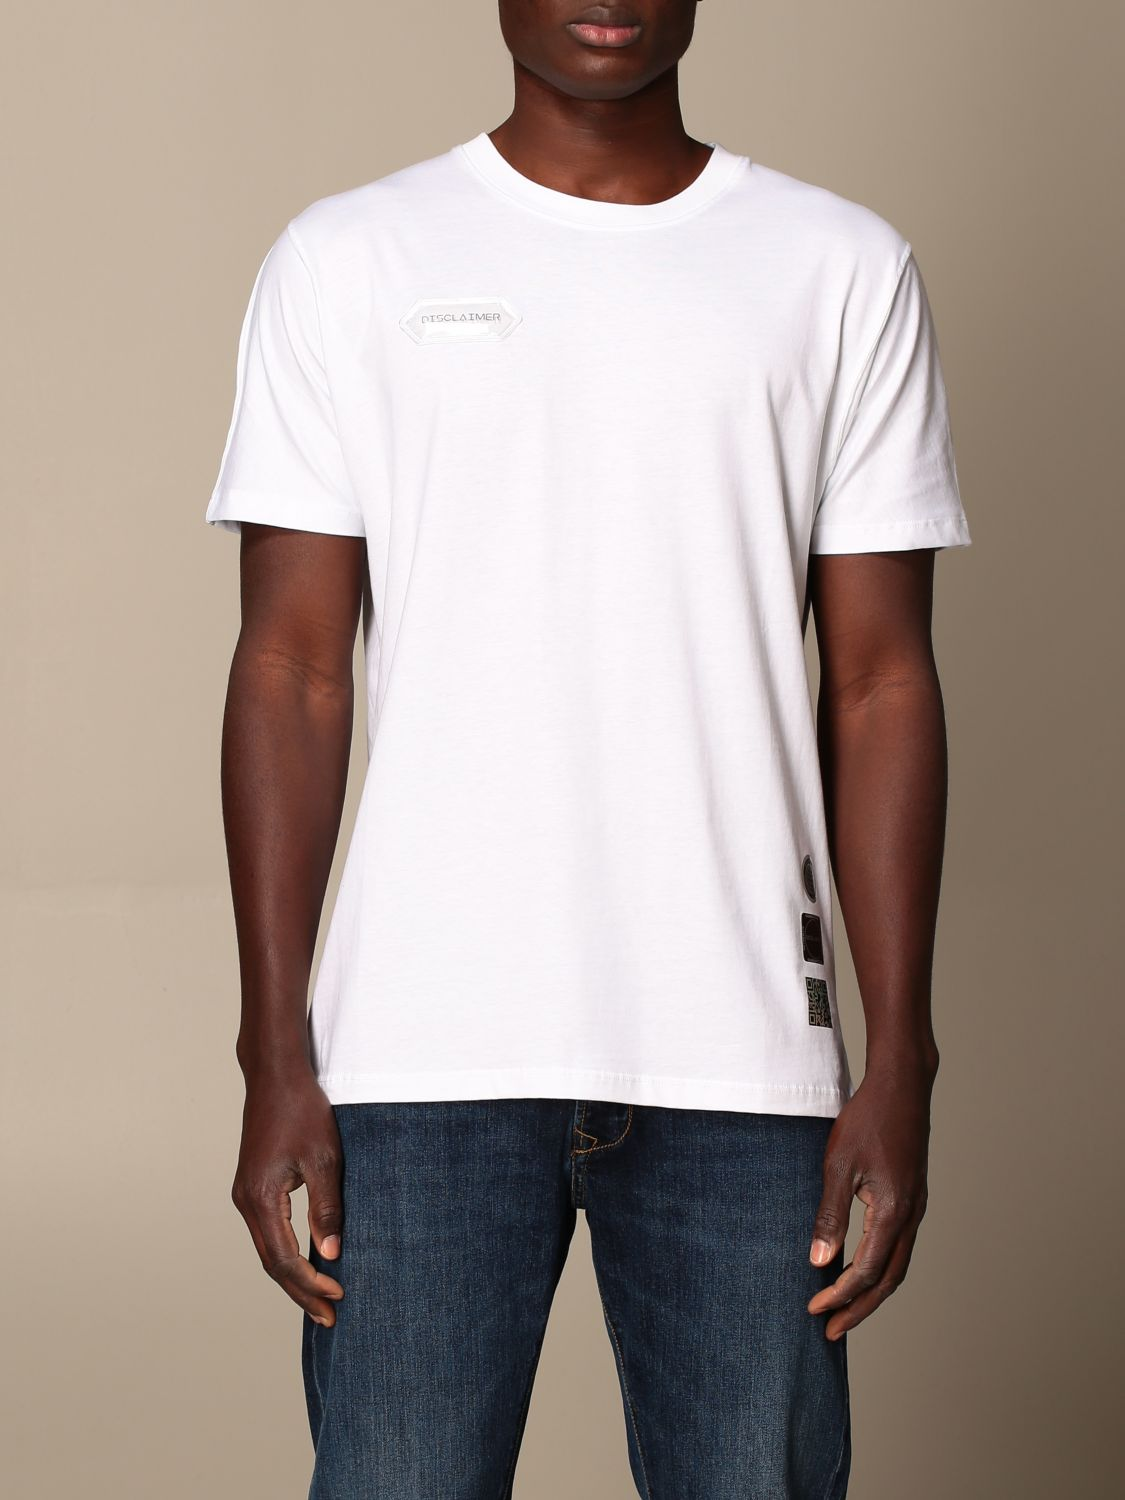 T-shirt Disclaimer: Dislaimer T-shirt in cotton with back print white 1